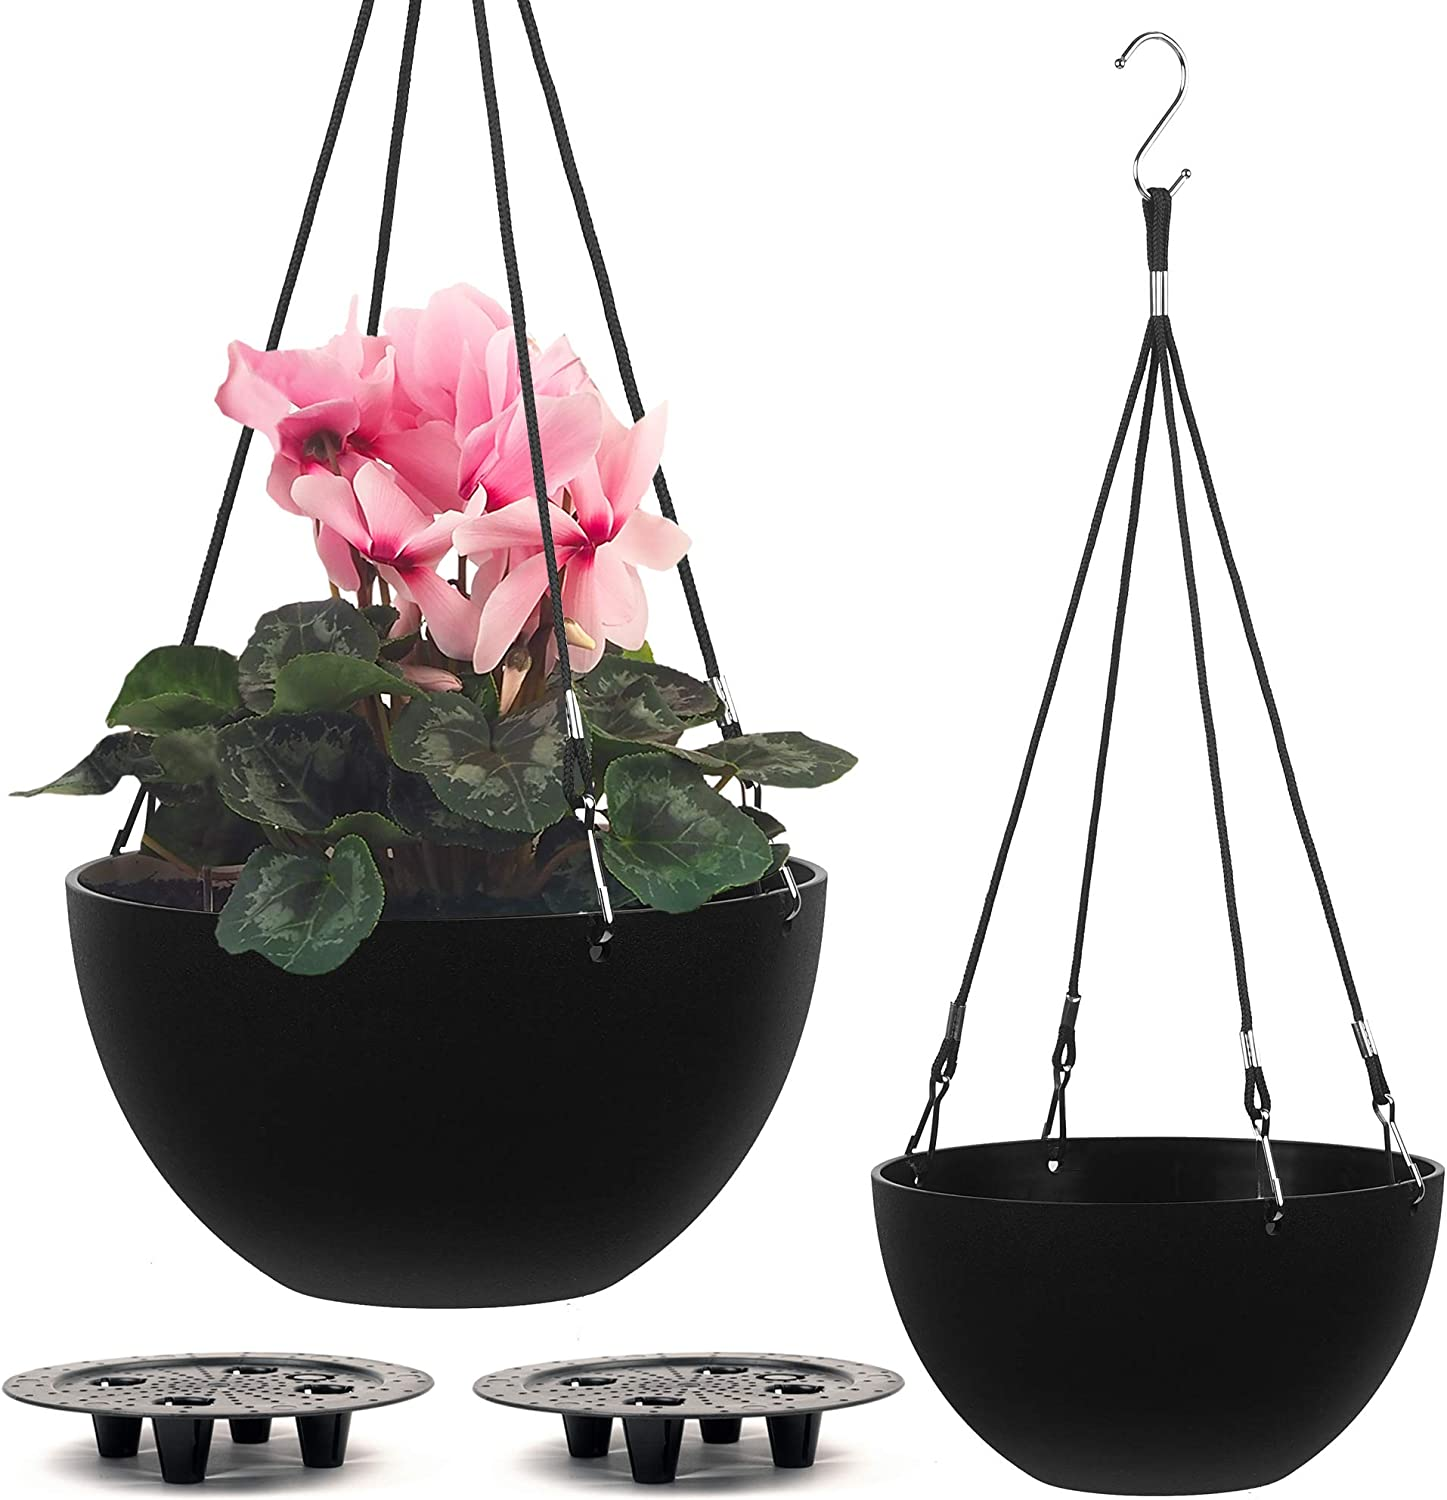 Hanging Plant Pot 4 years warranty - Max 77% OFF Self 10